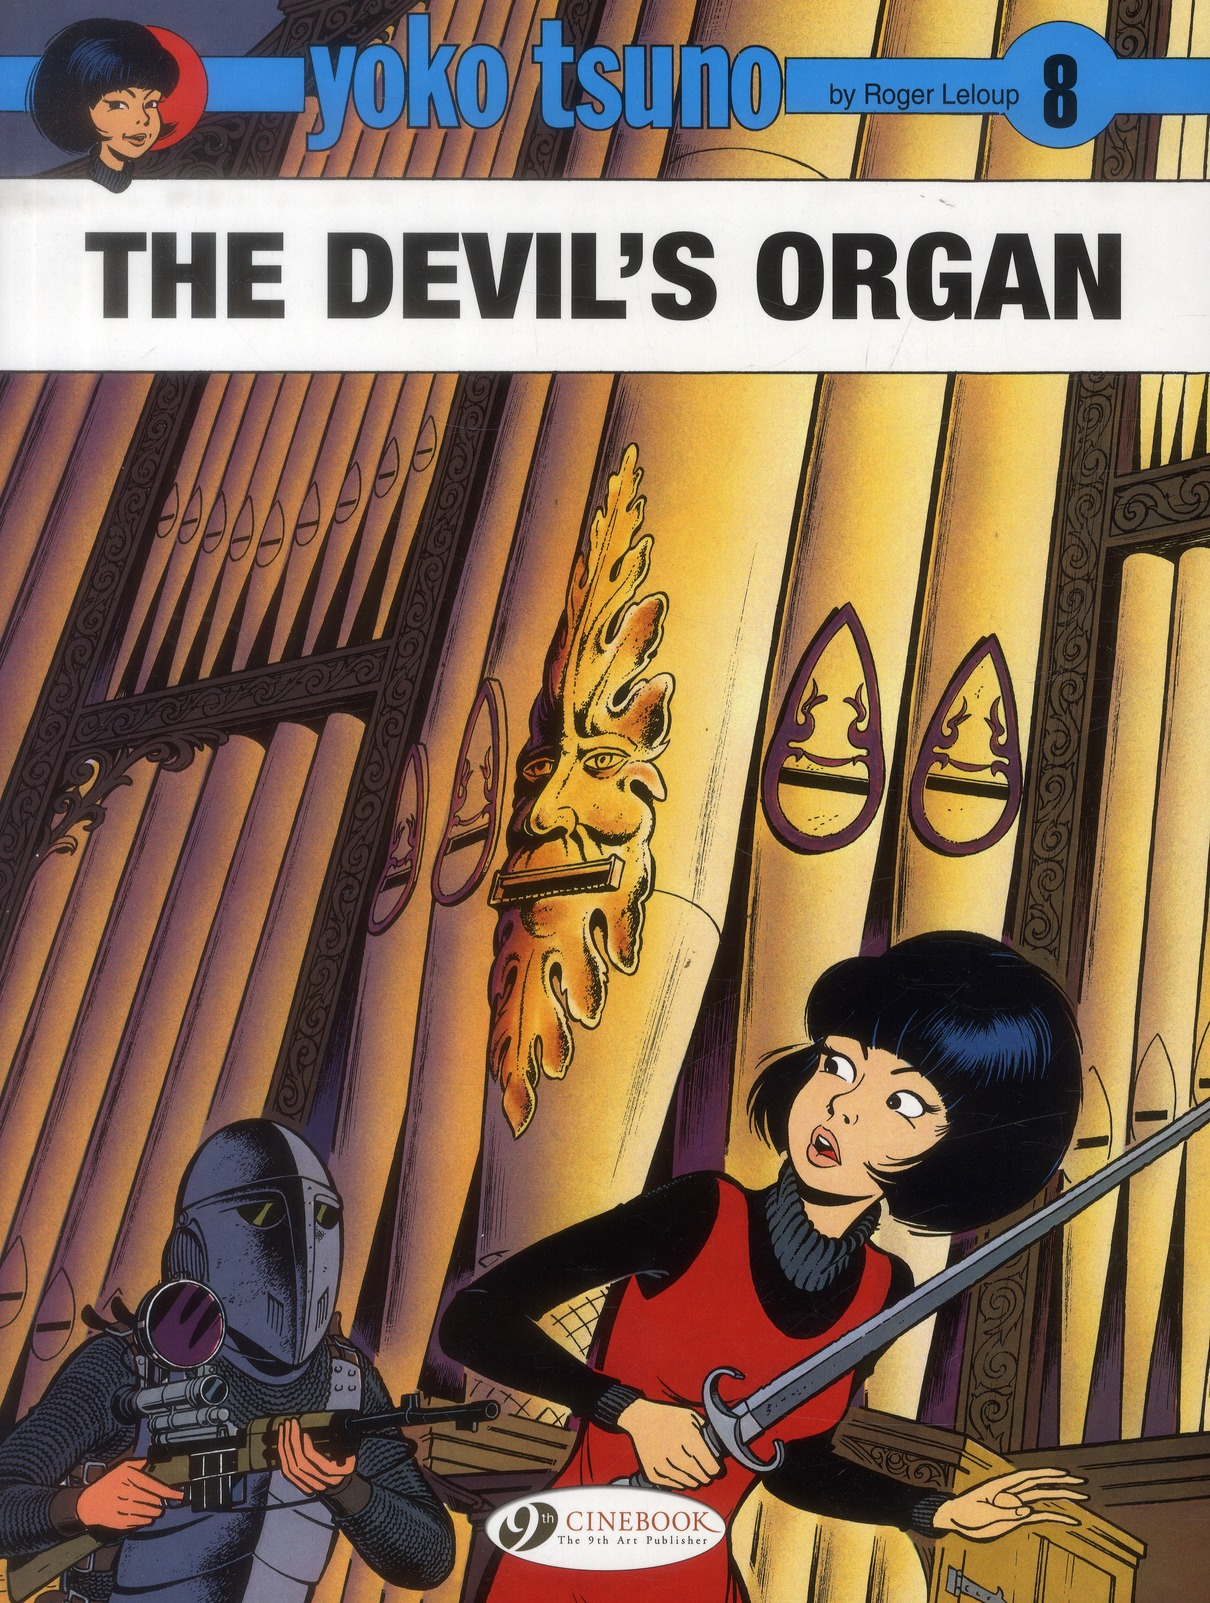 YOKO TSUNO - TOME 8 THE DEVIL'S ORGAN - VOL08